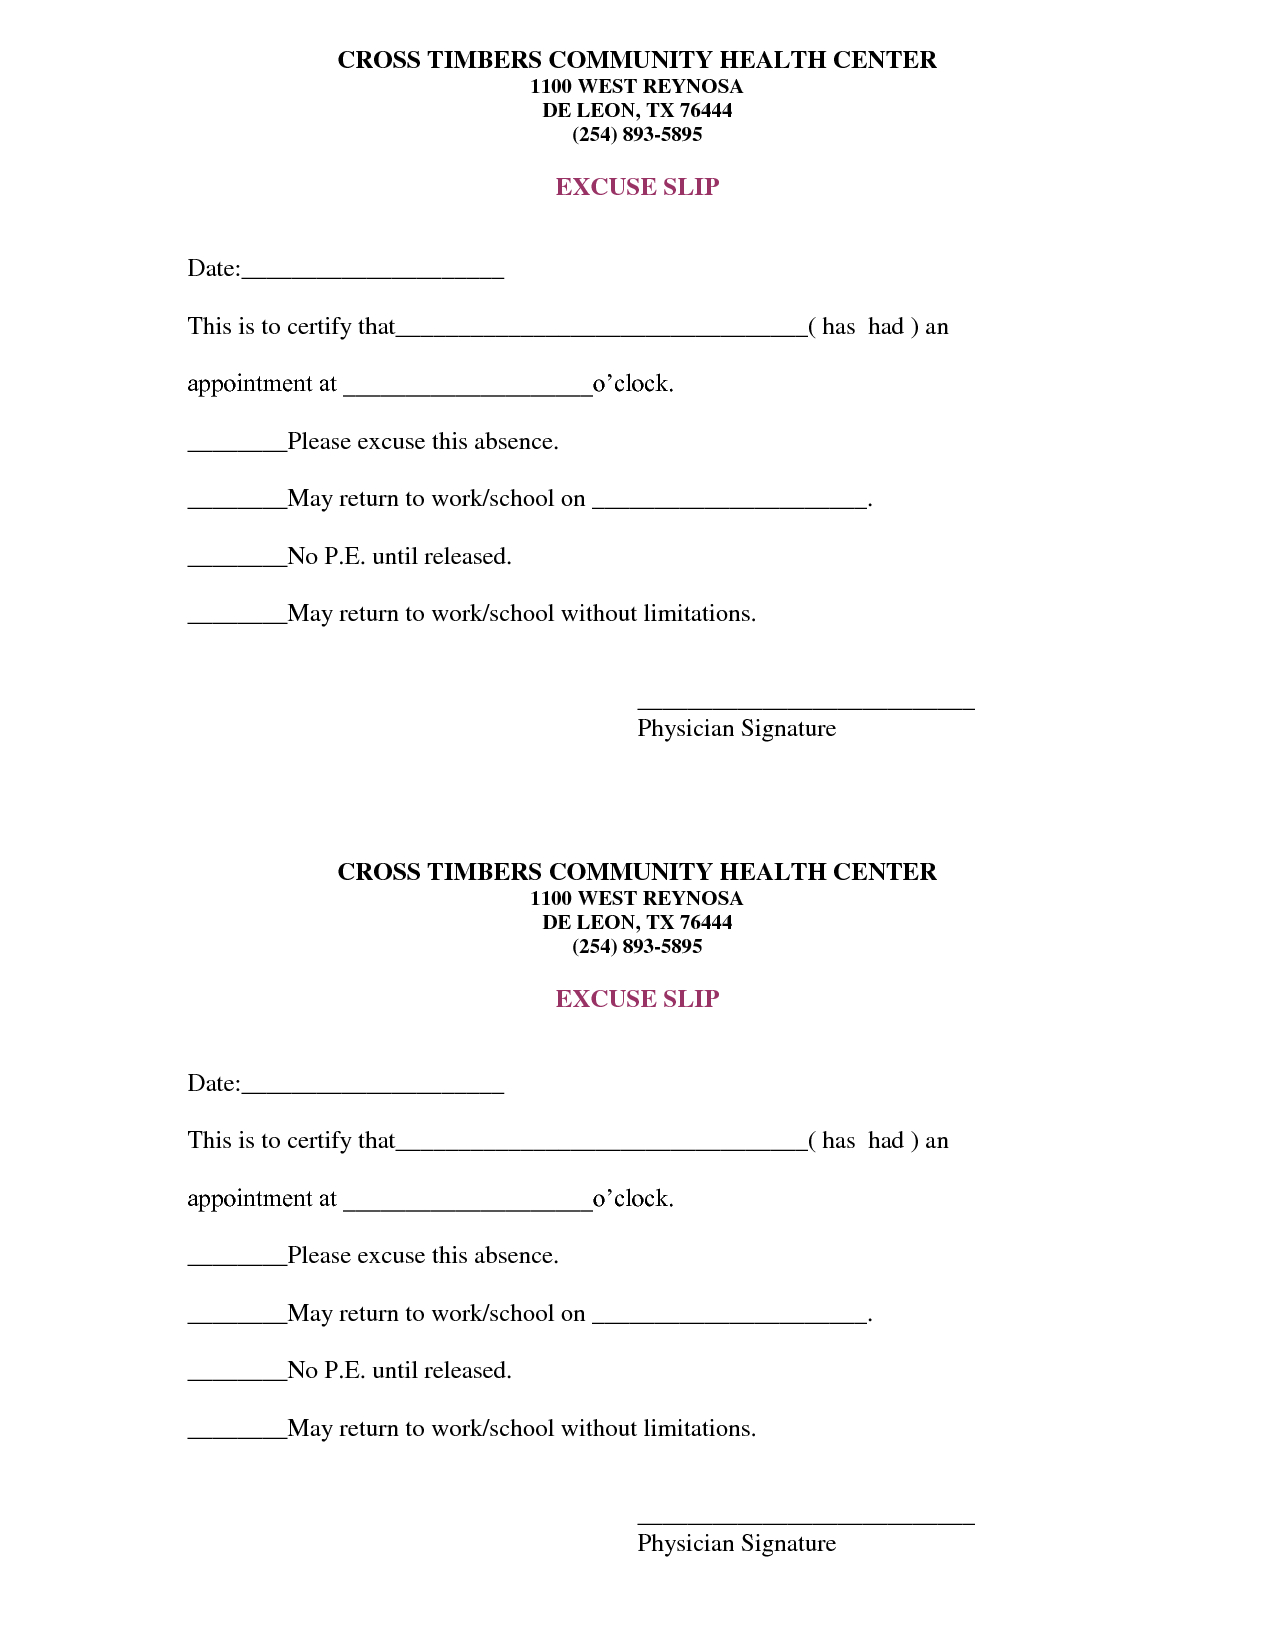 Free Doctors Note Template | Scope Of Work Template | On The Run - Free Printable Doctors Note